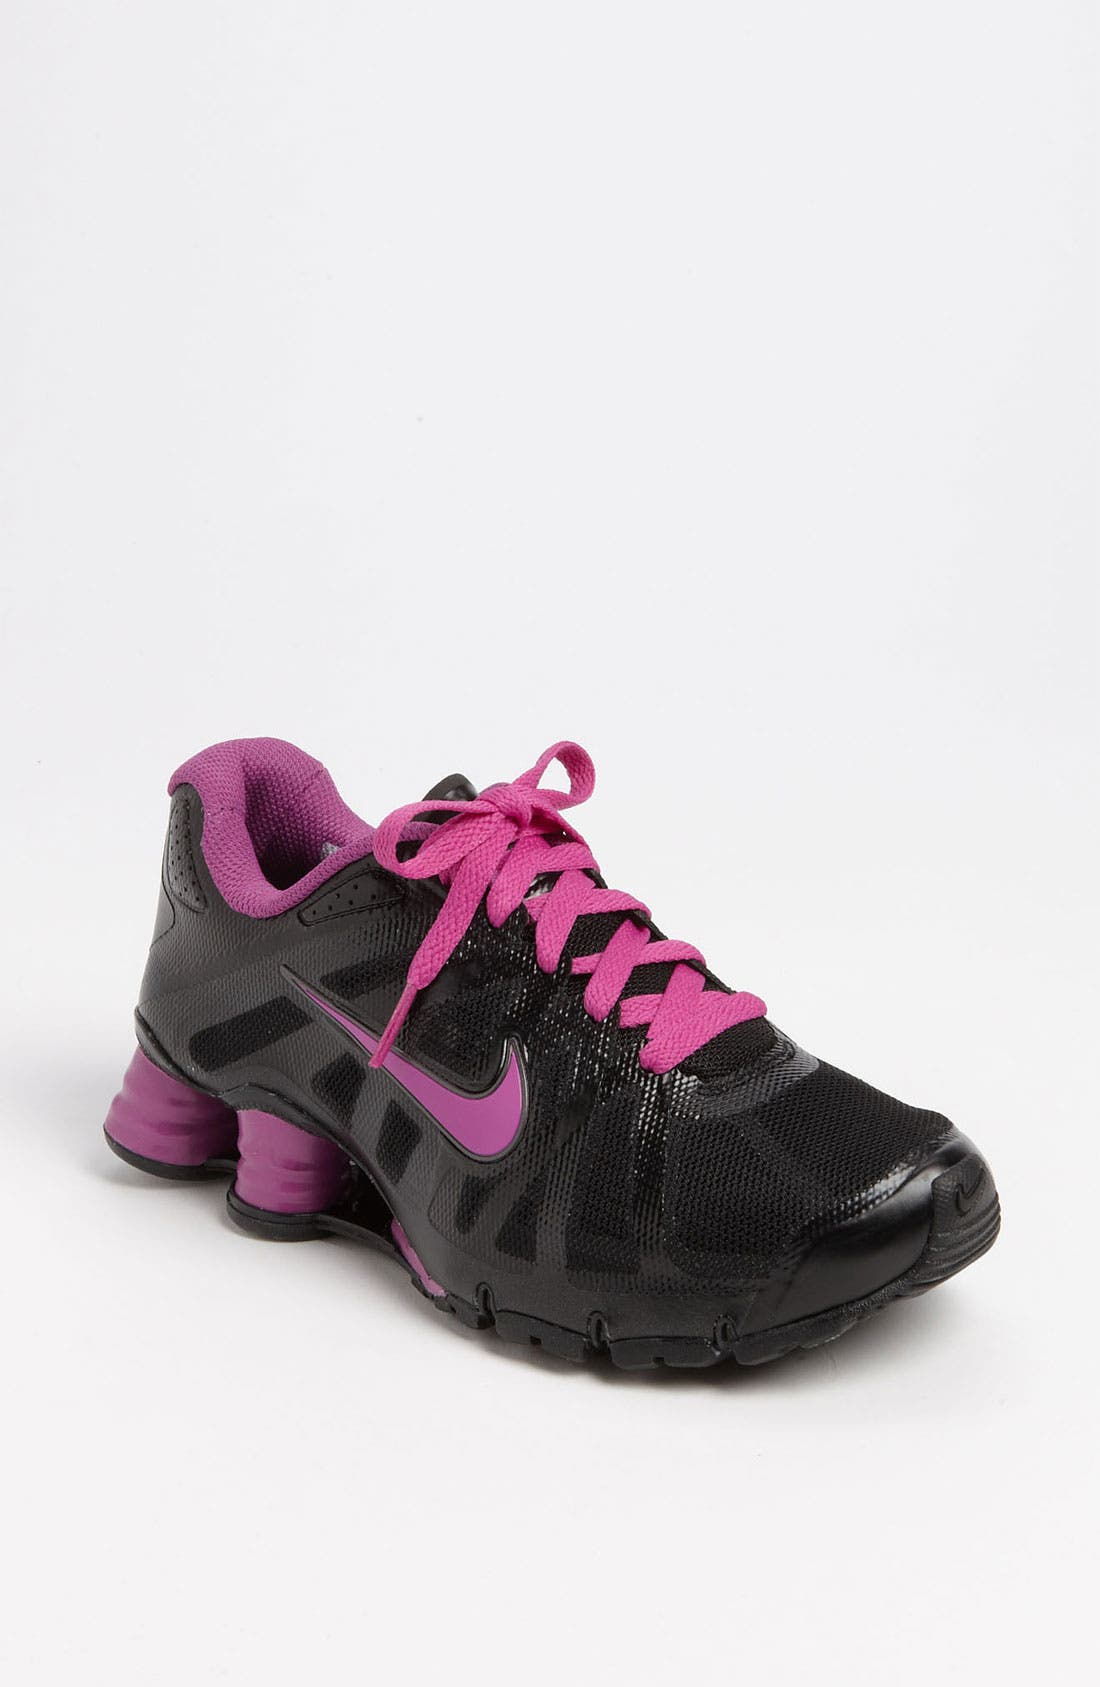 Alternate Image 1 Selected - Nike 'Shox Roadster' Running Shoe (Women) (Exclusive)